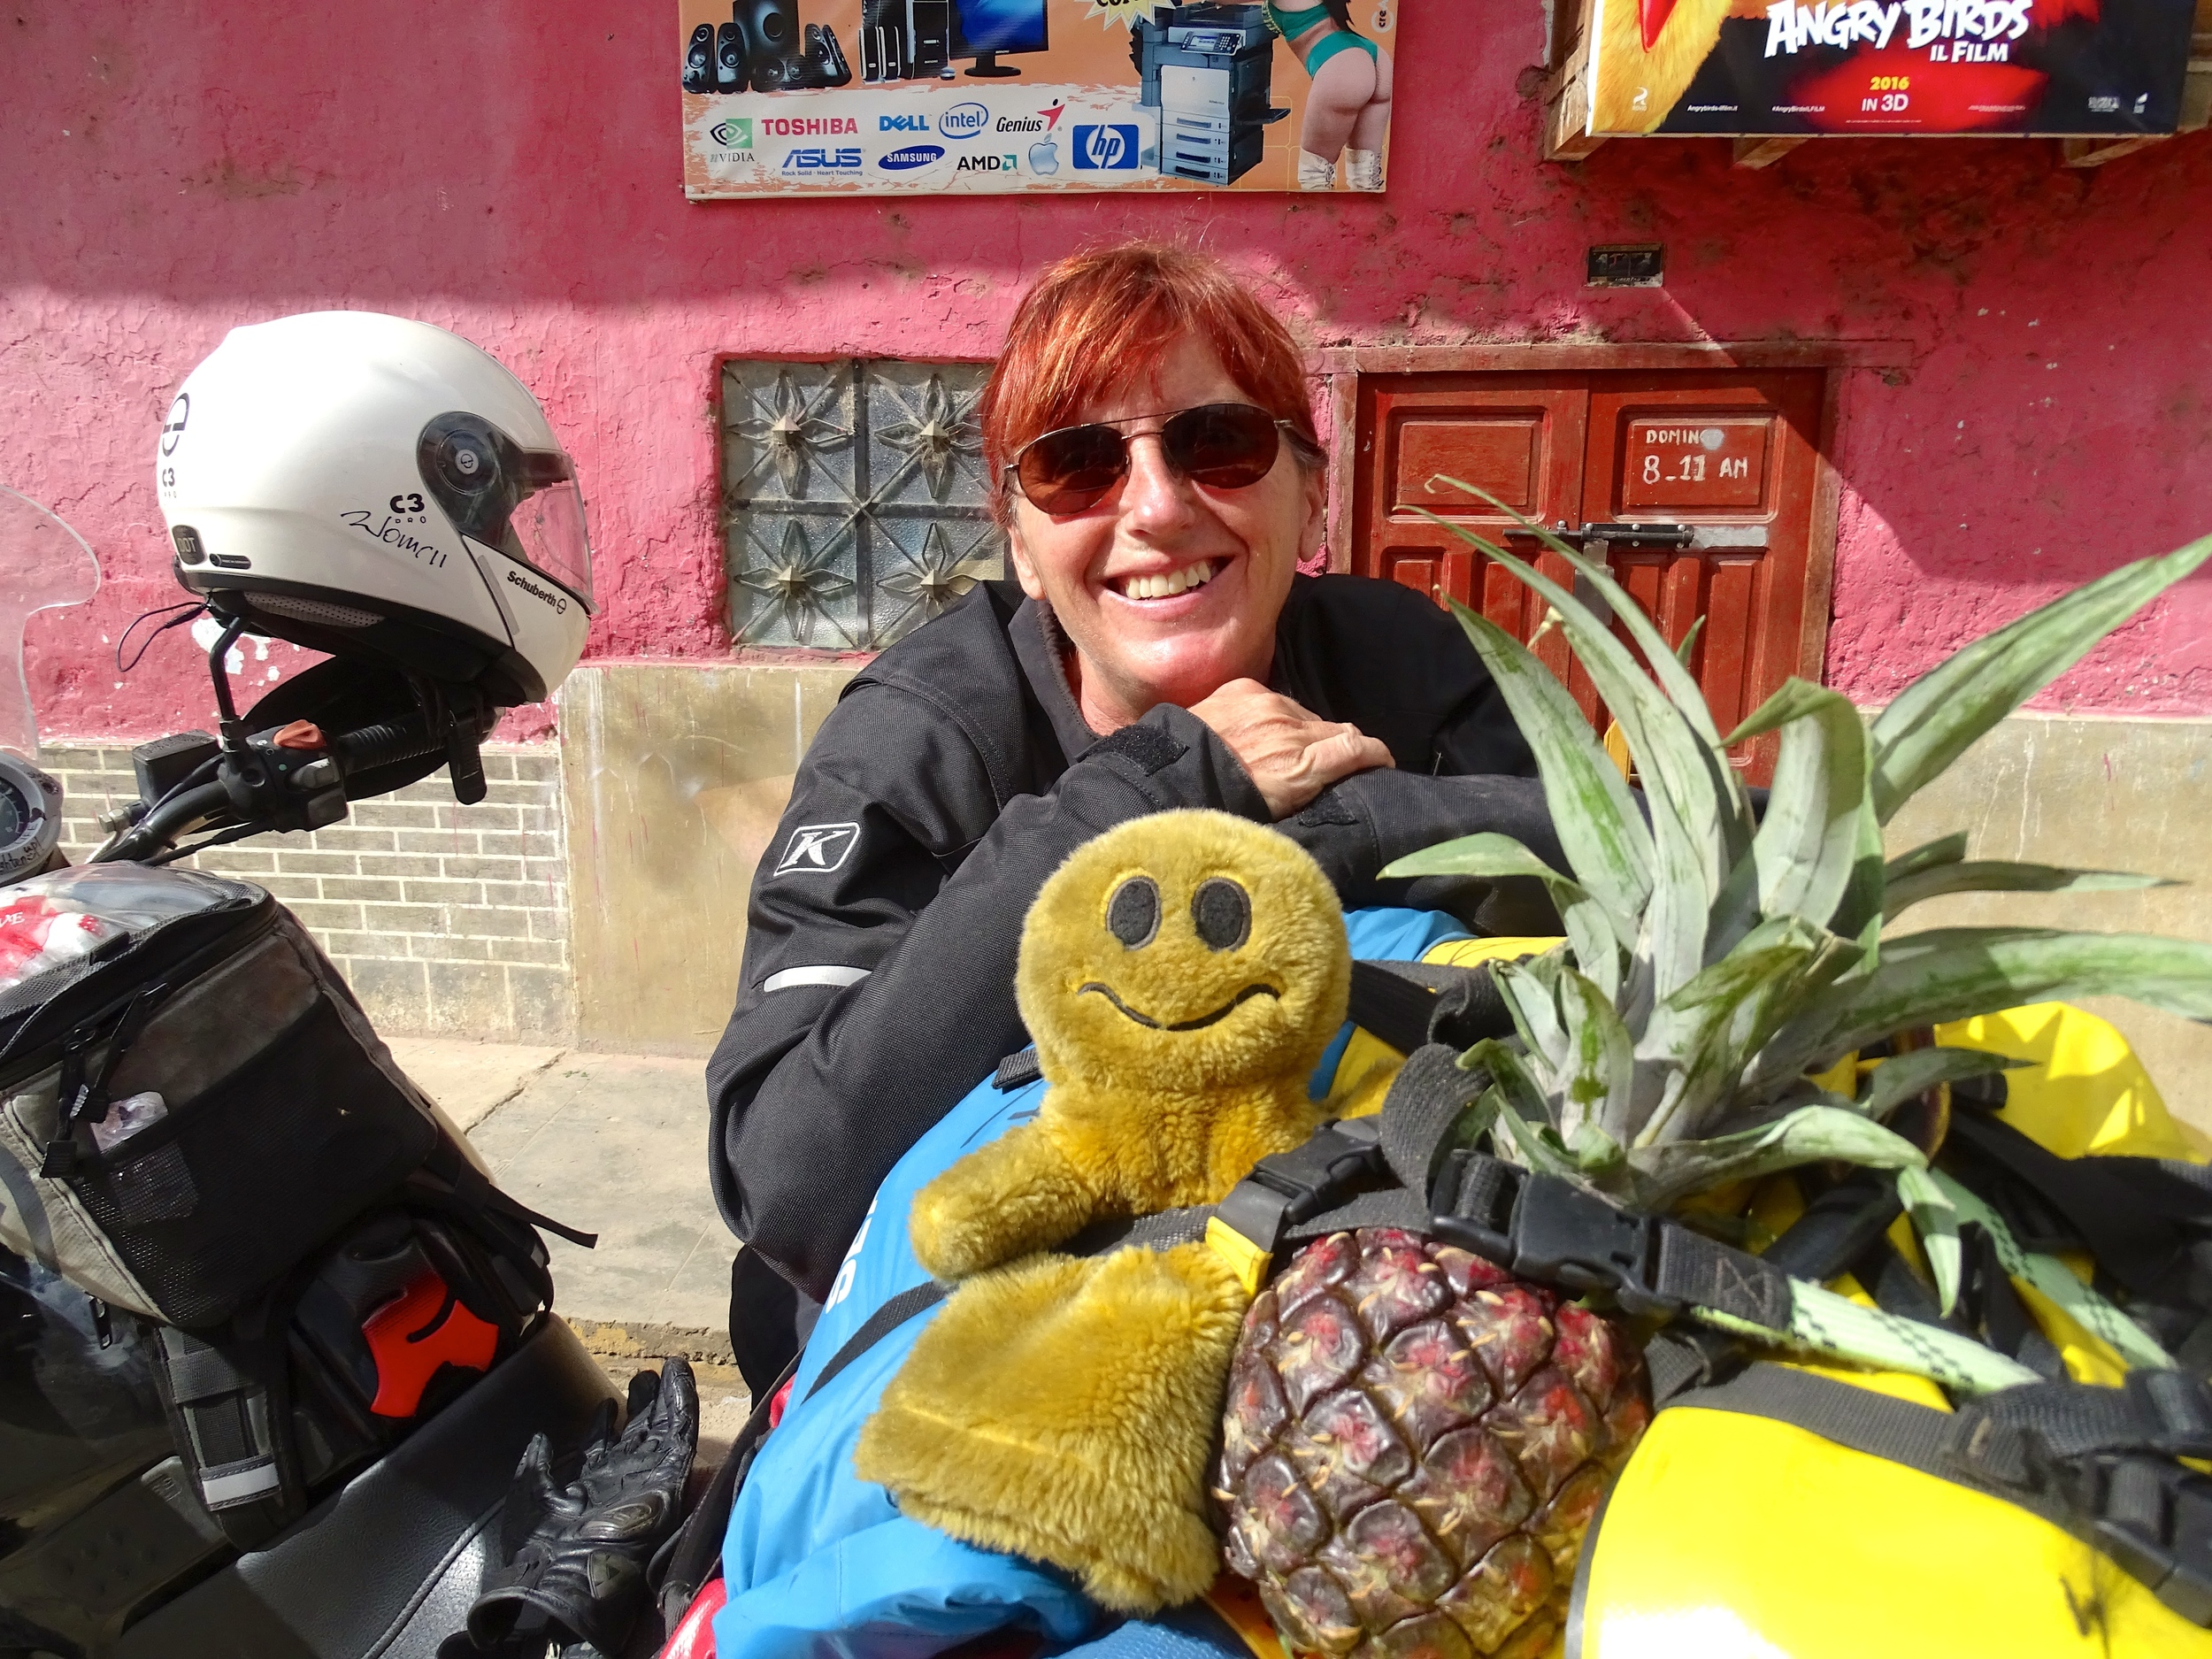 While Keith was chatting, I was shopping for fruits & veggies in the market. This pineapple had to ride on top with Senior Feliz.